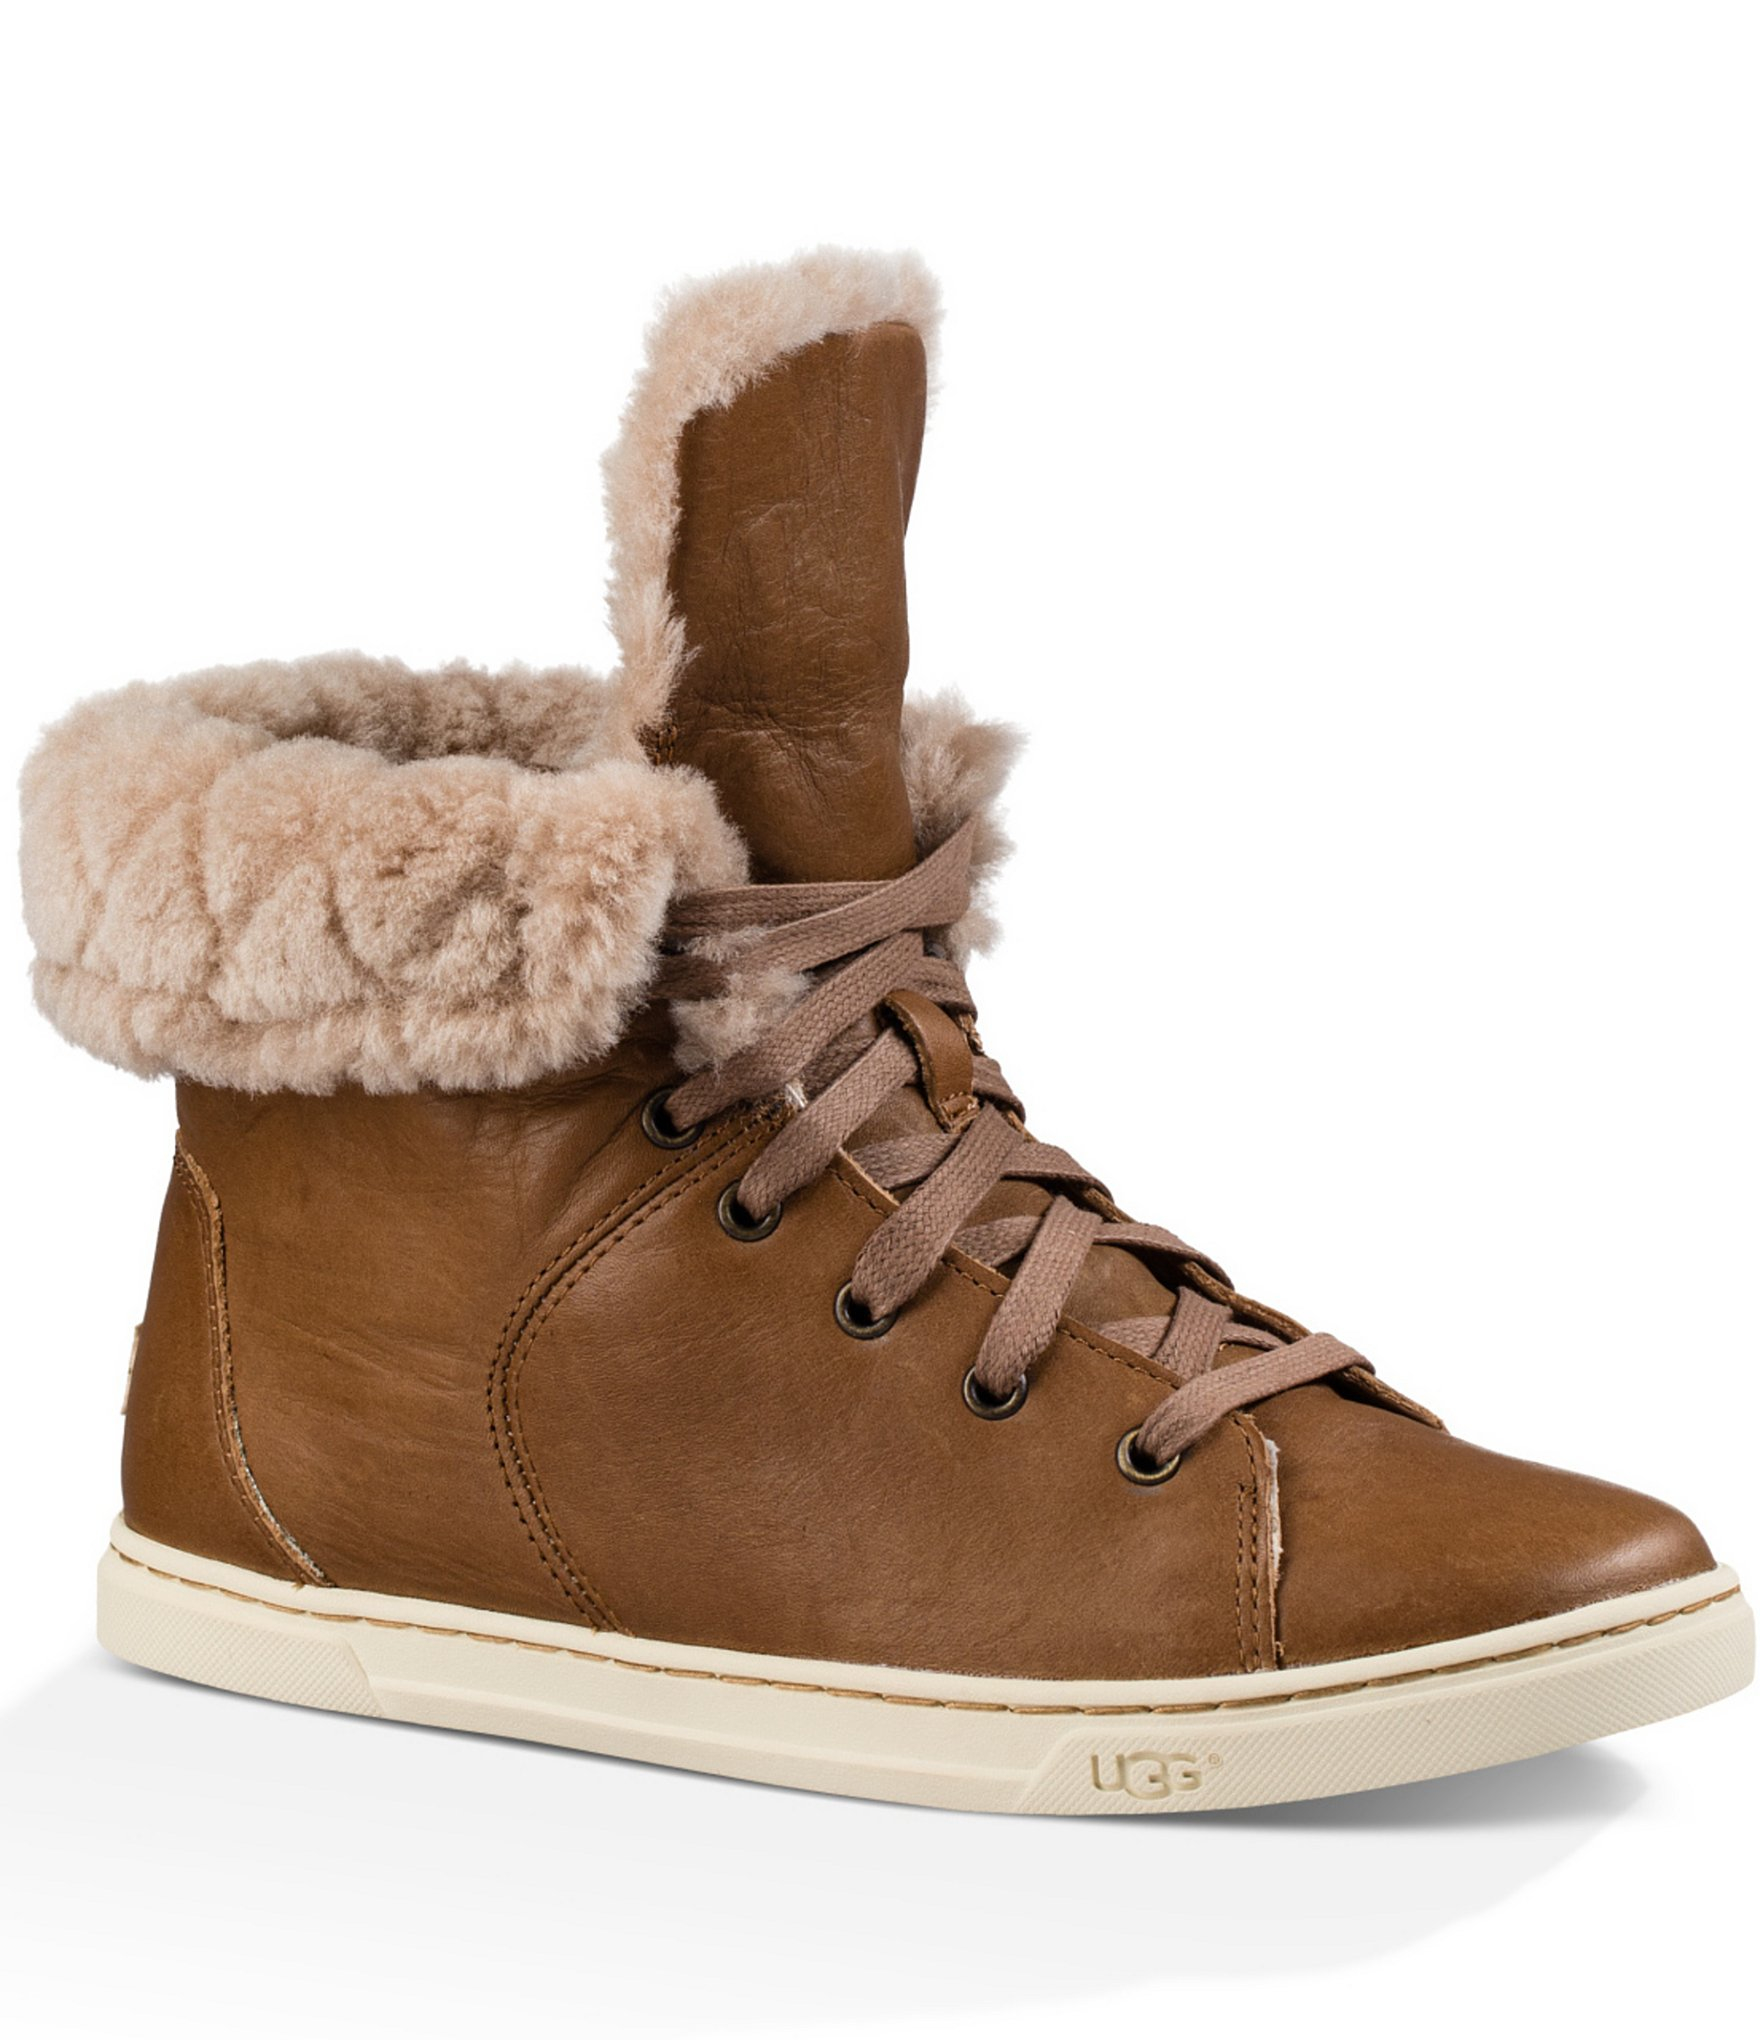 f0fe18f93f7 UGG Multicolor ® Croft Luxe Quilt Burnished Leather Lace Up Sneakers